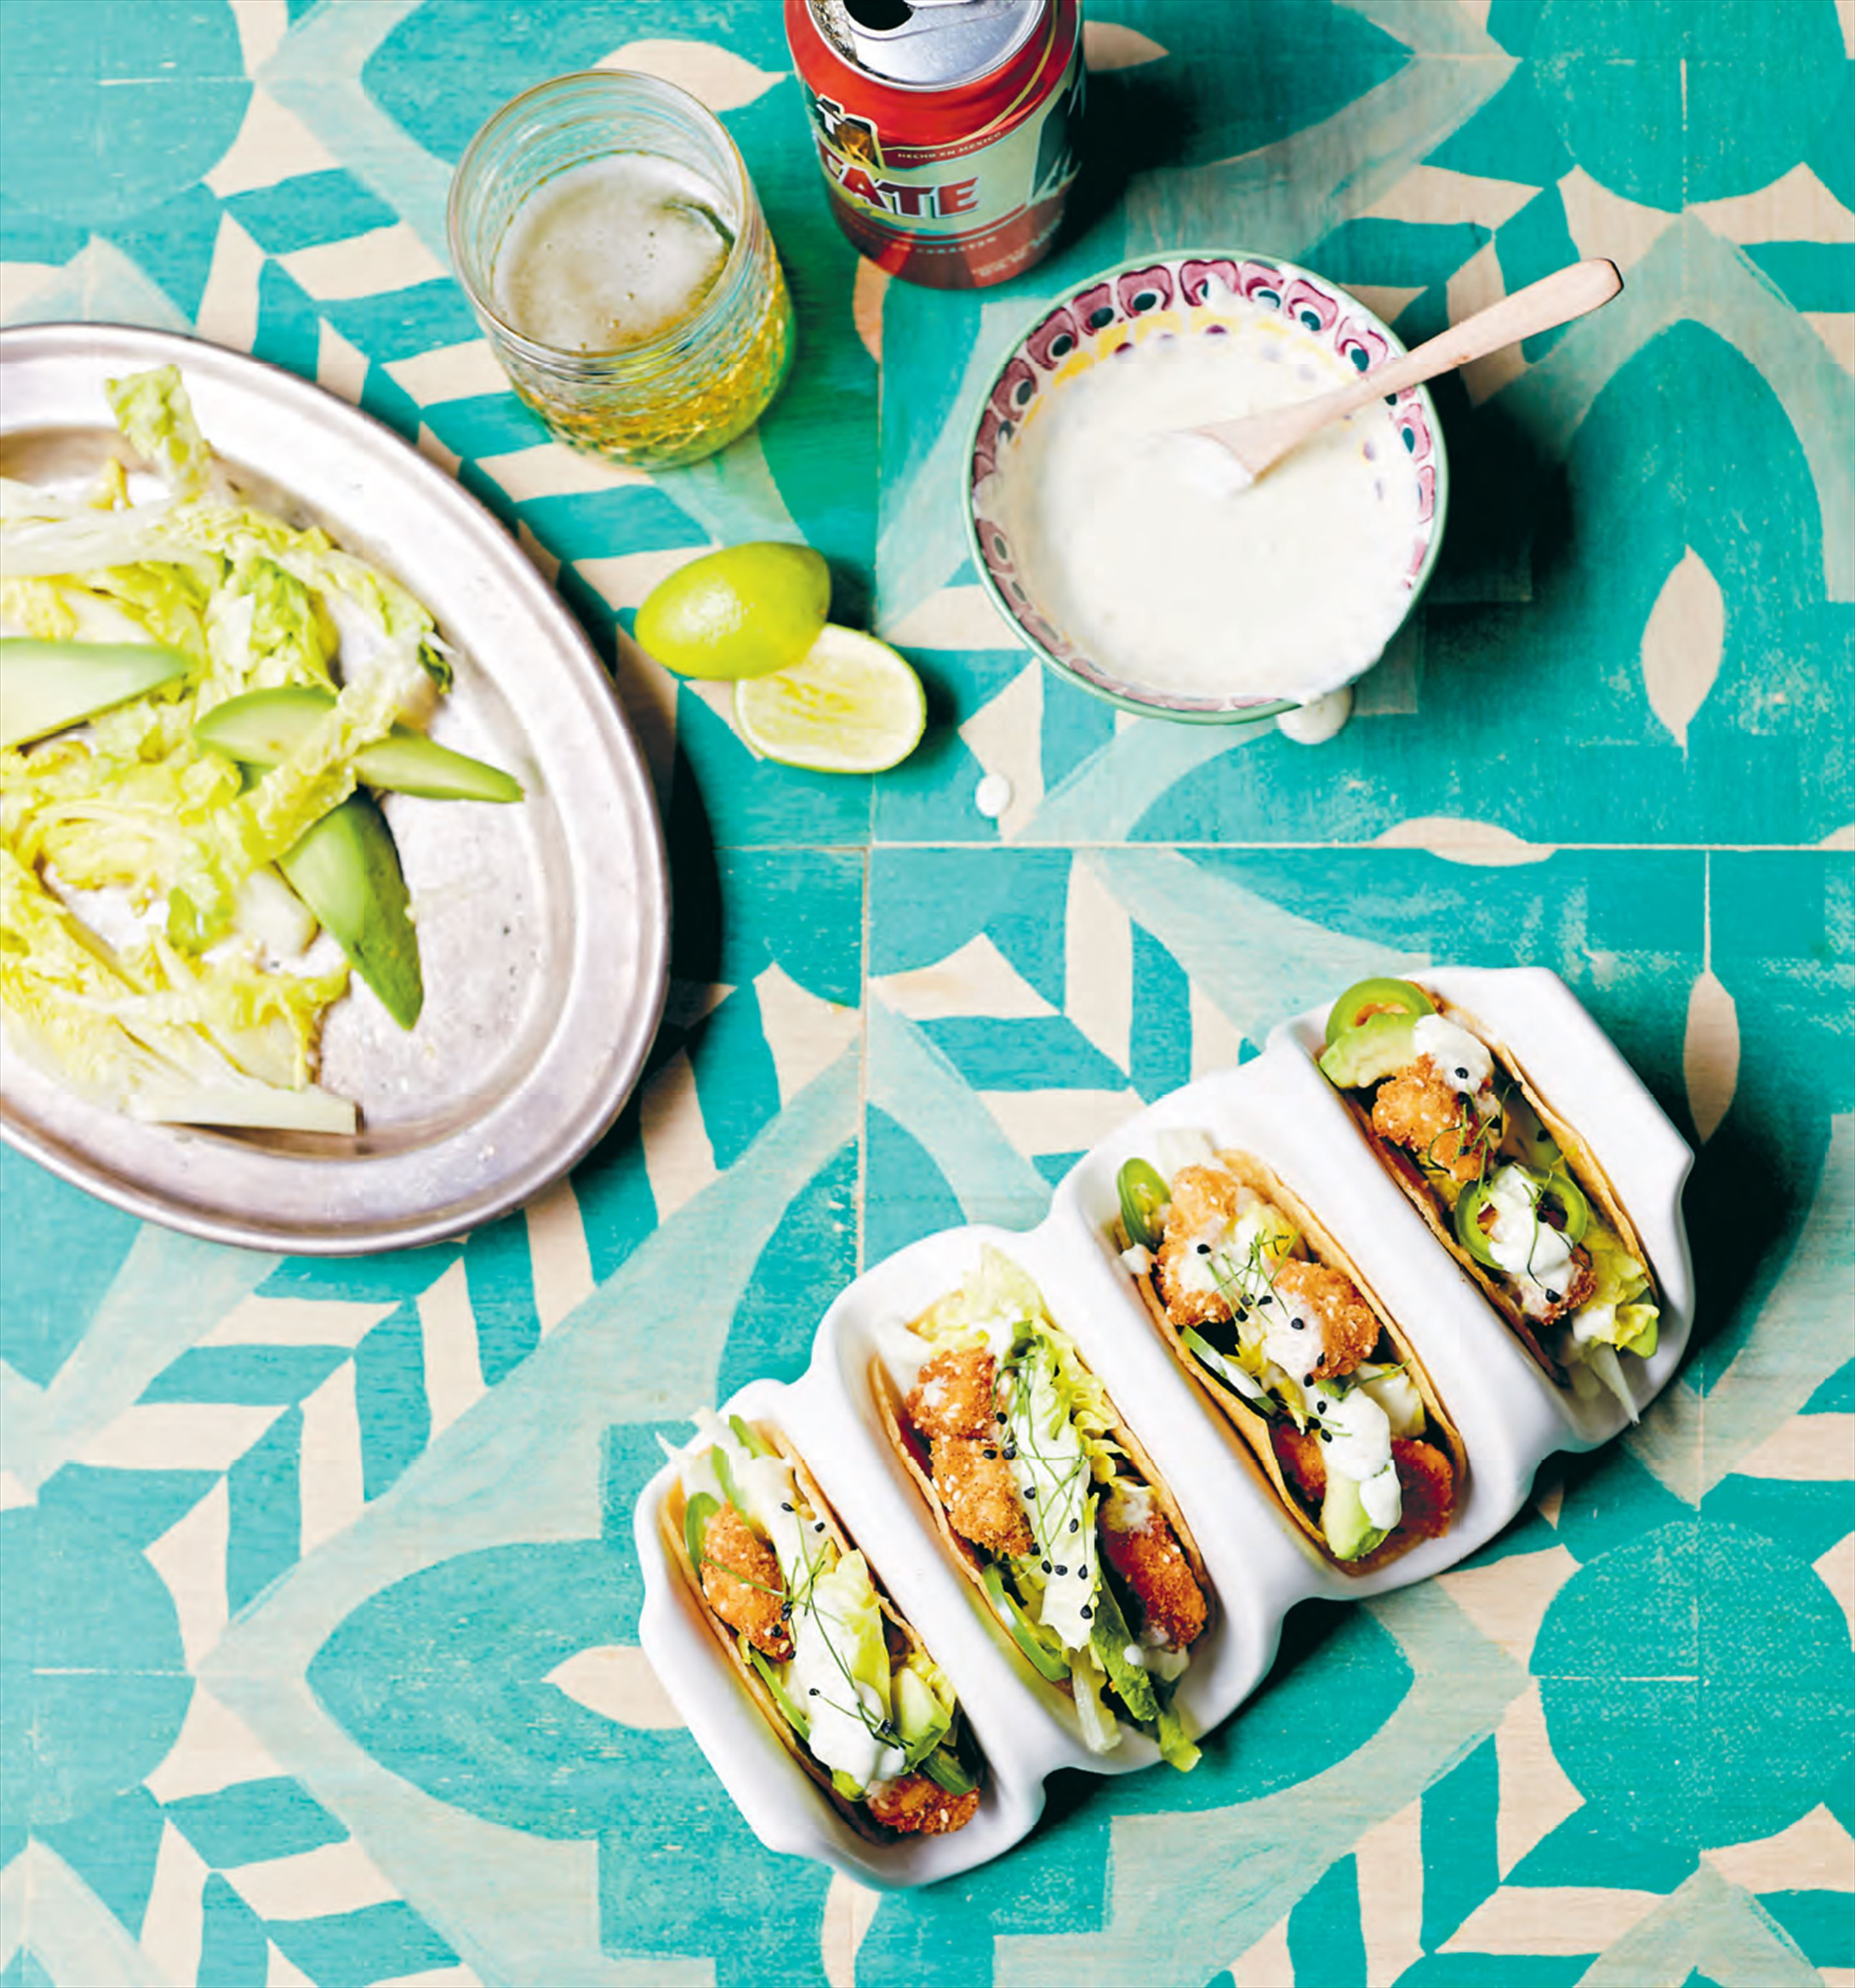 Sesame crunch chicken tacos, cos, avocado & zesty crema